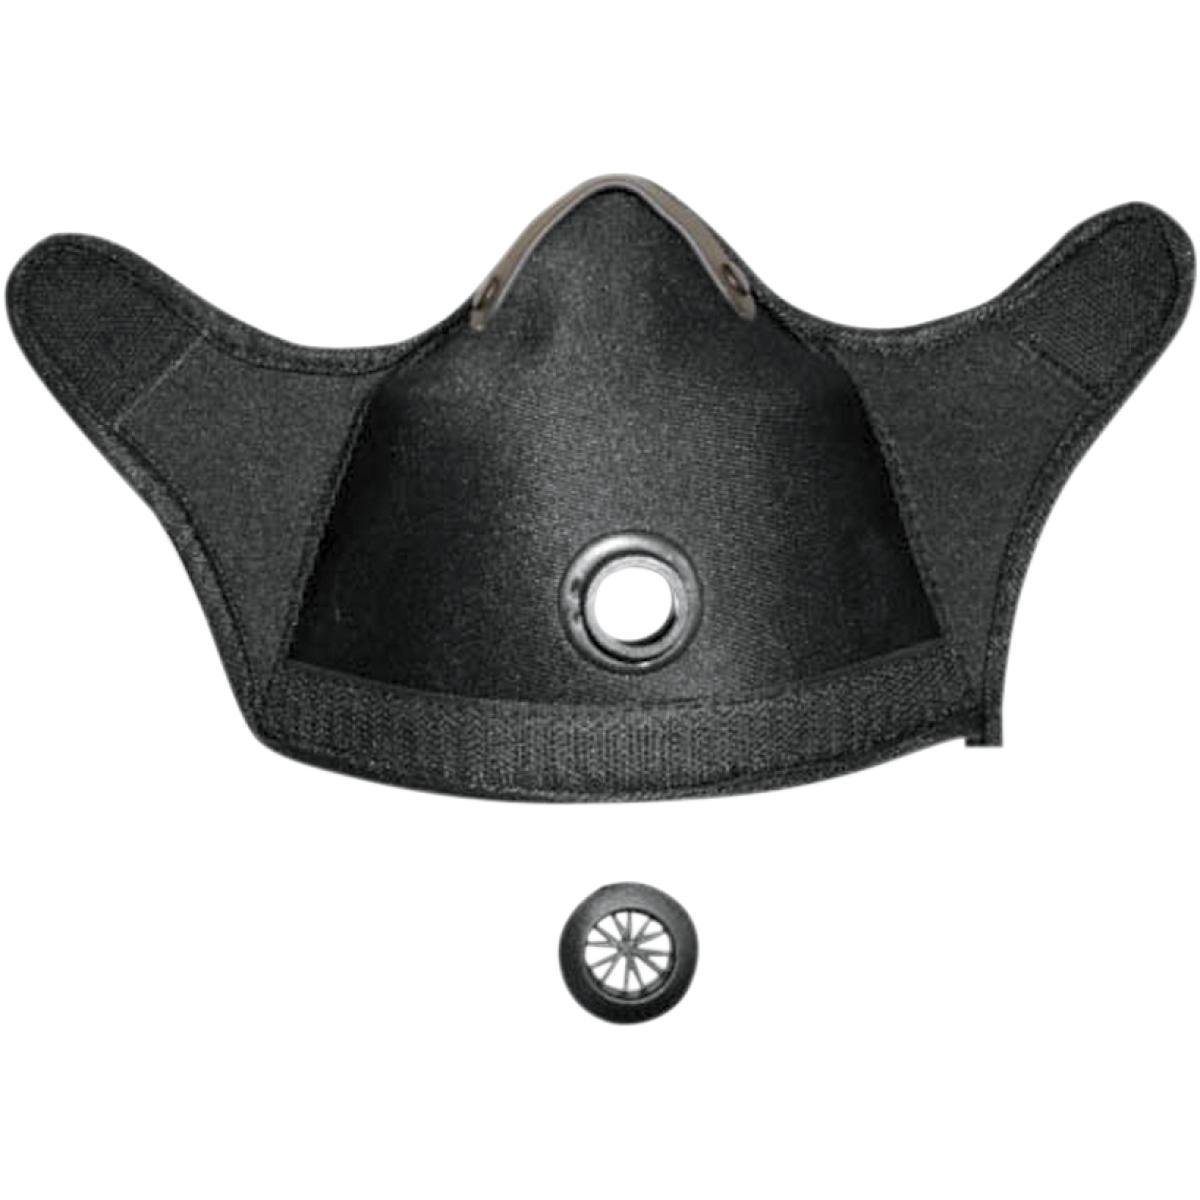 AFX Breath Guard for FX-100S Helmet - Black 0134-1061